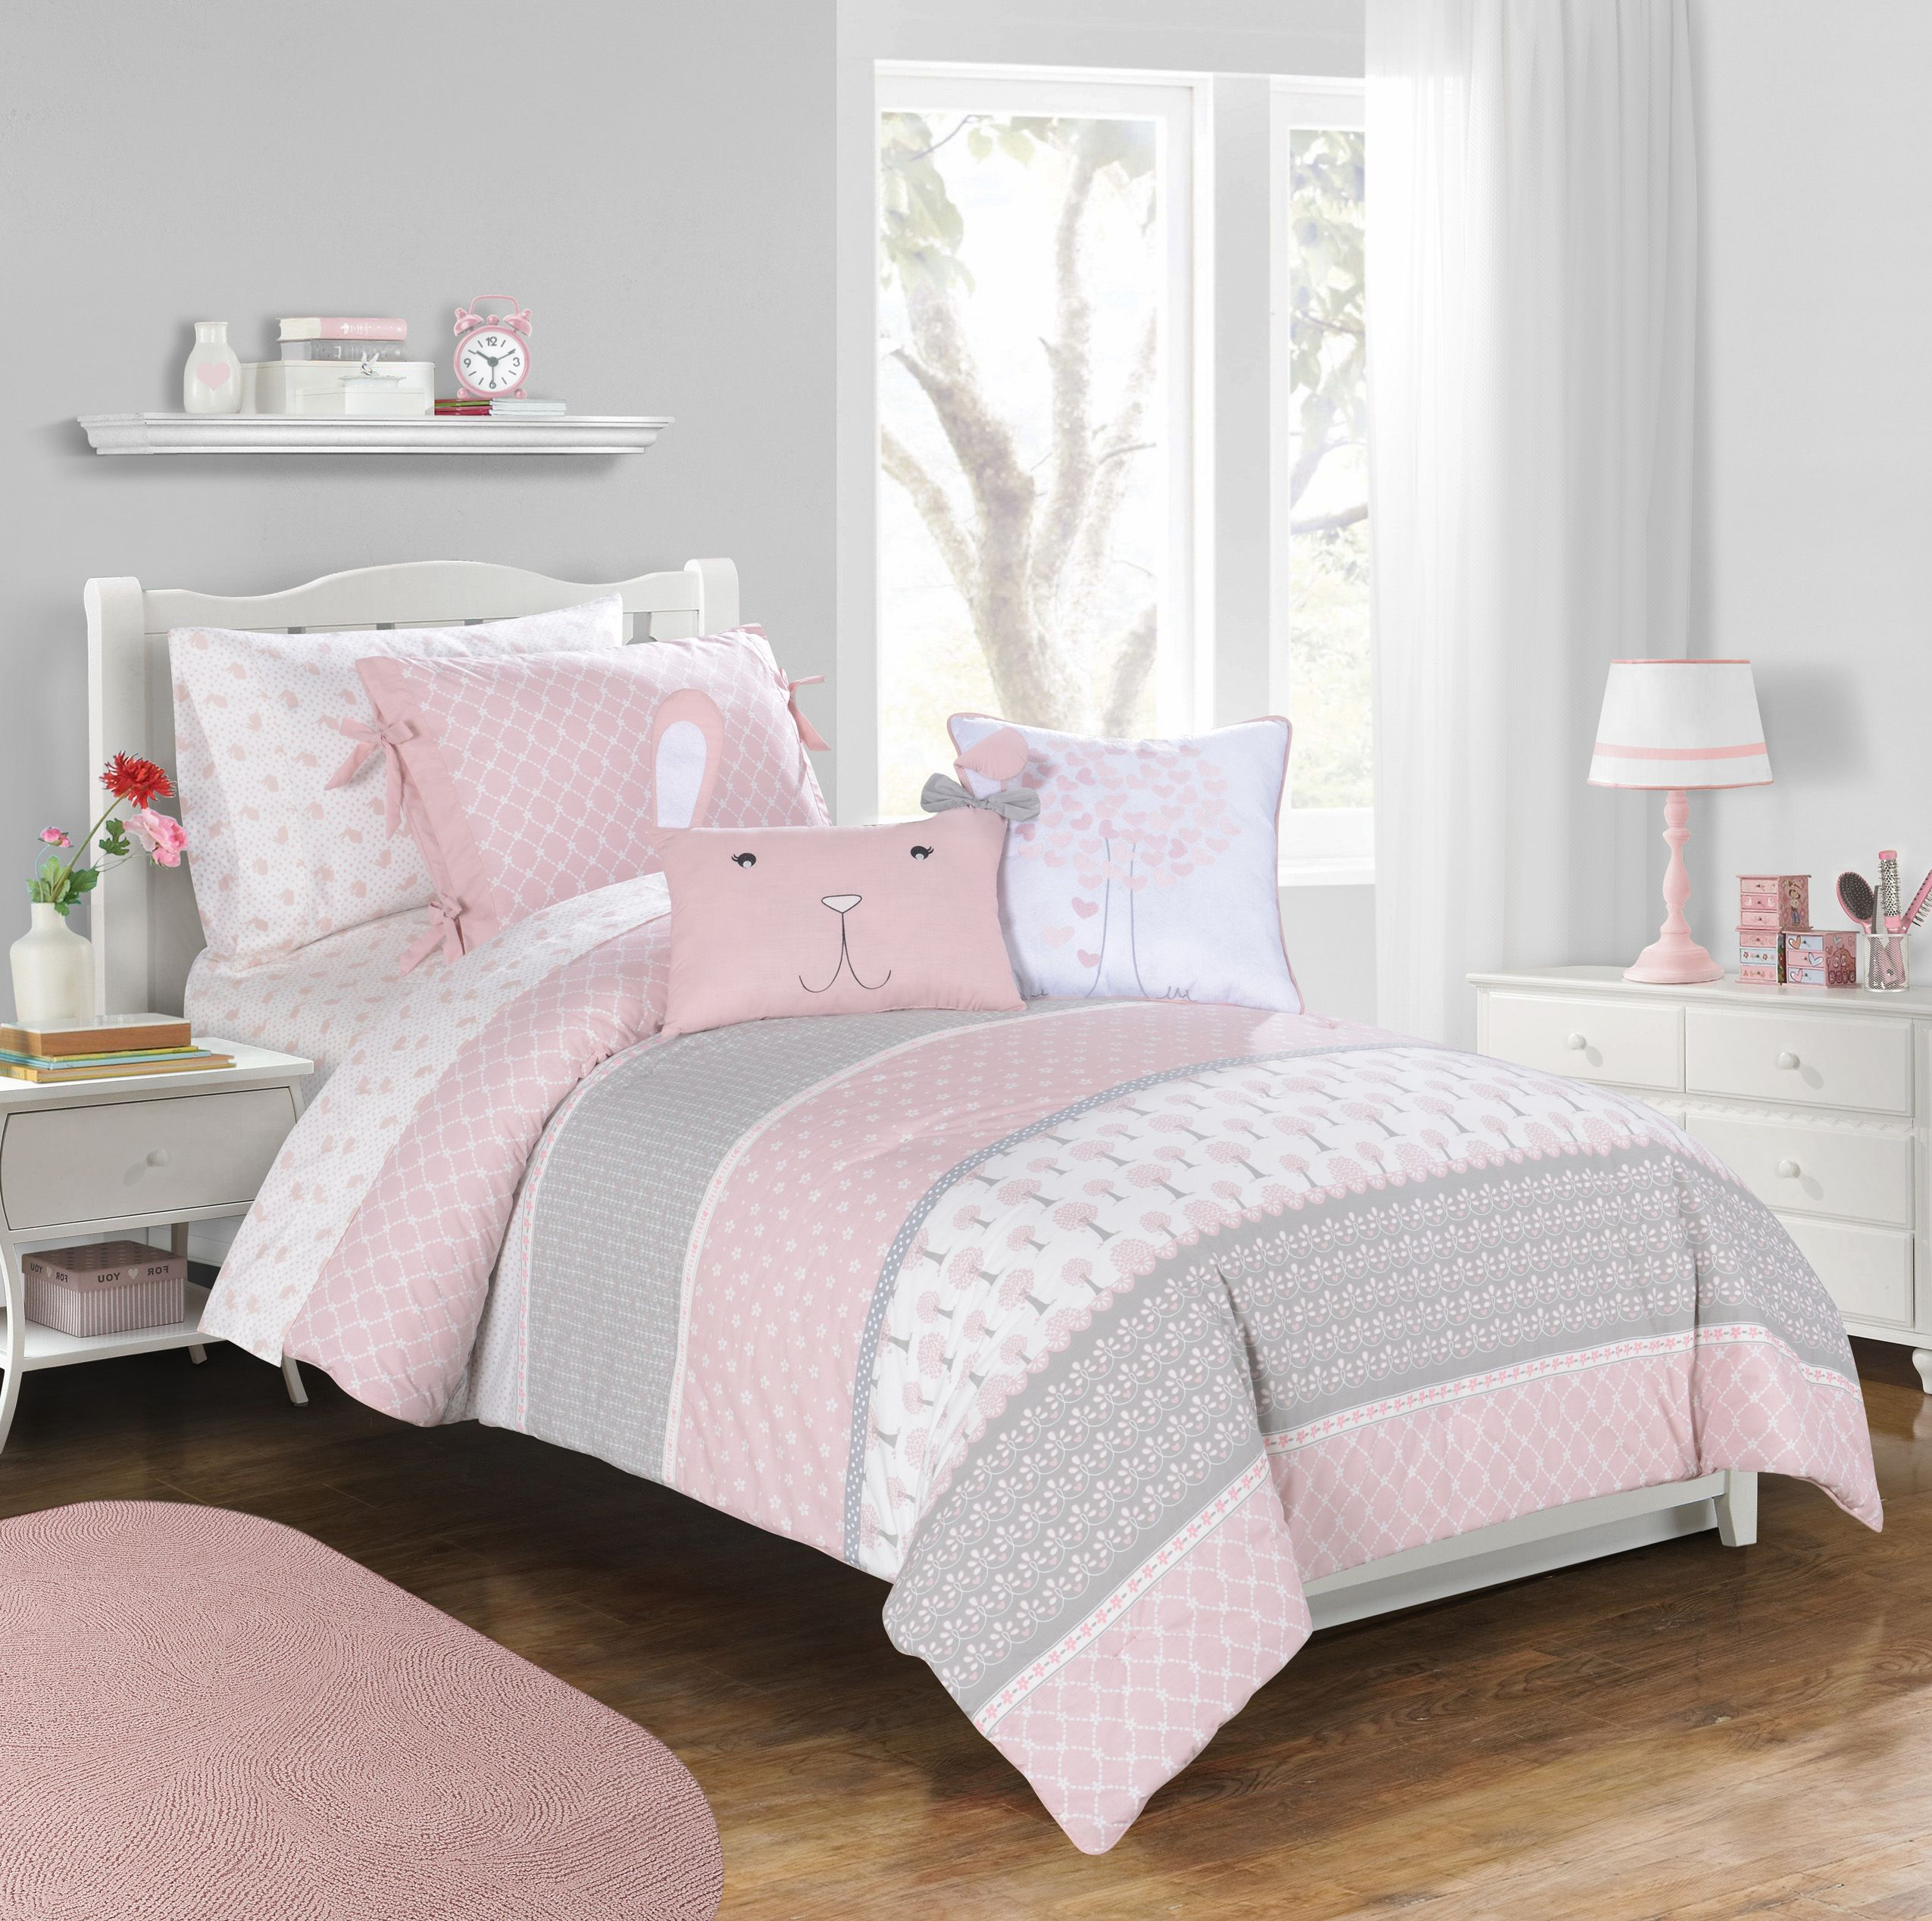 girls bedding Heartwood Forest girls bedding collection by Frank + LuLu available  @jcpenney